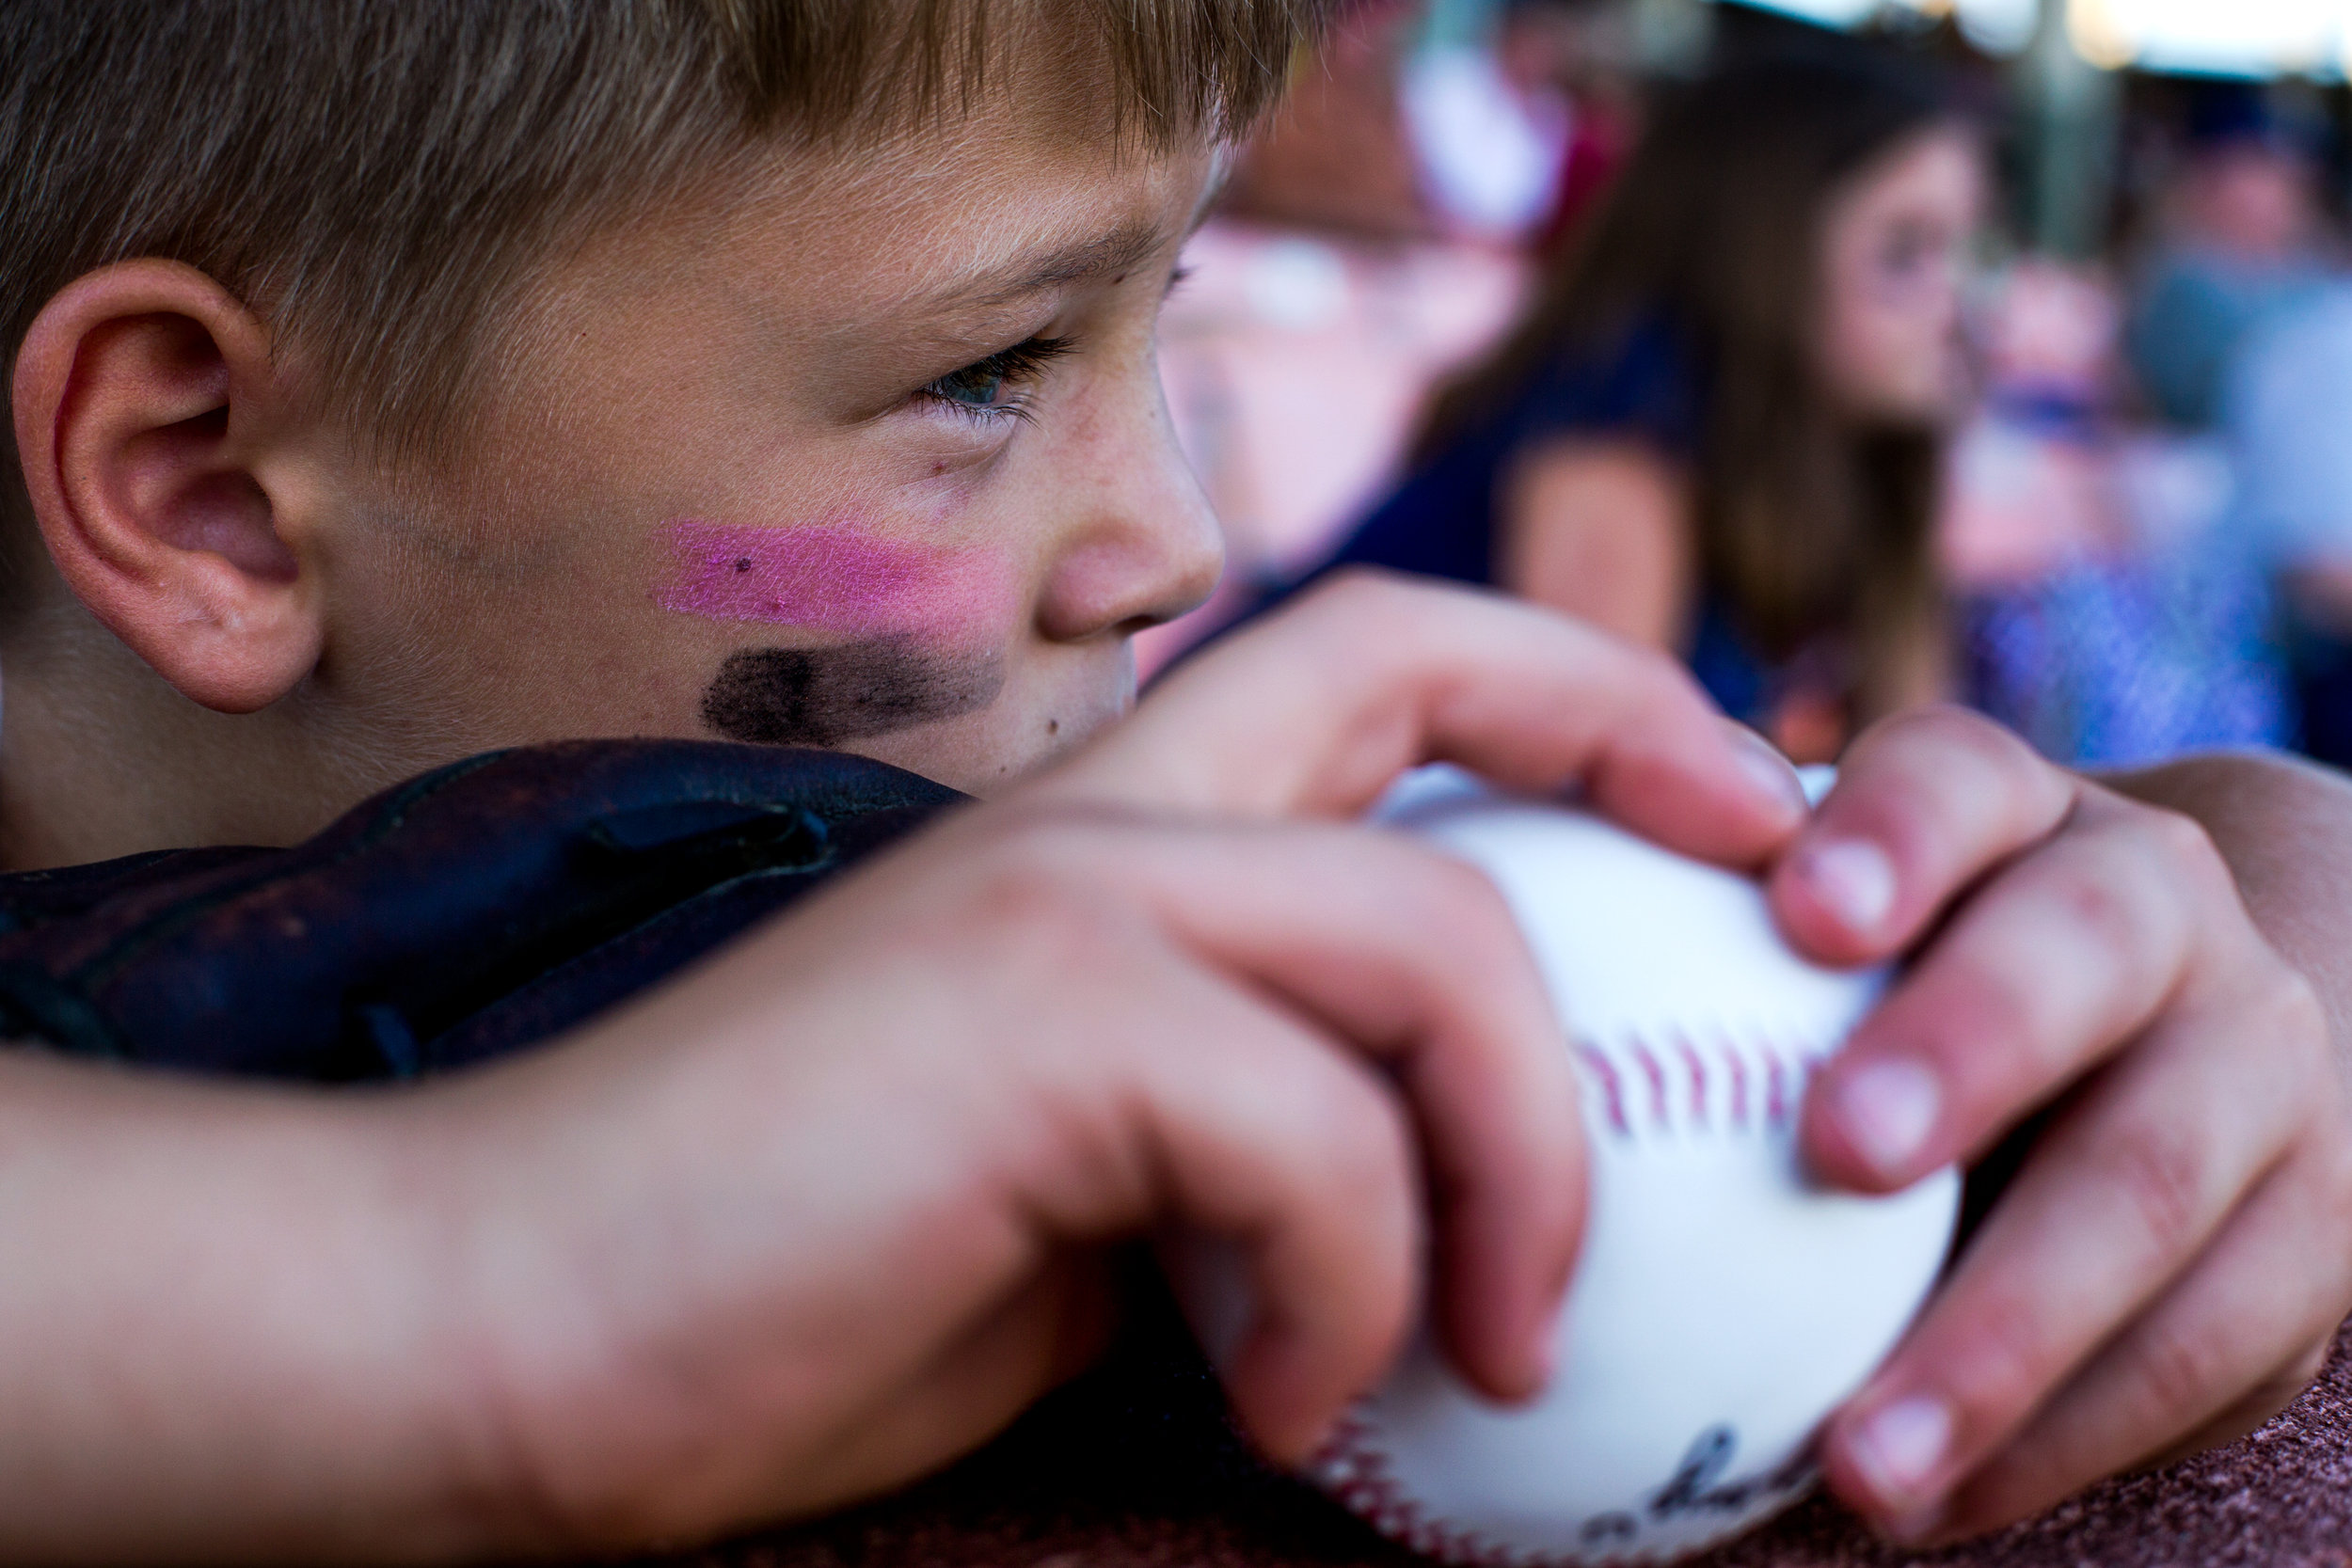 Elijah Dickey of French Lick, 8, held onto his signed baseball as he watched Tuesday night's game at League Stadium in Huntingburg. The Bombers defeated Paducah 8-2.